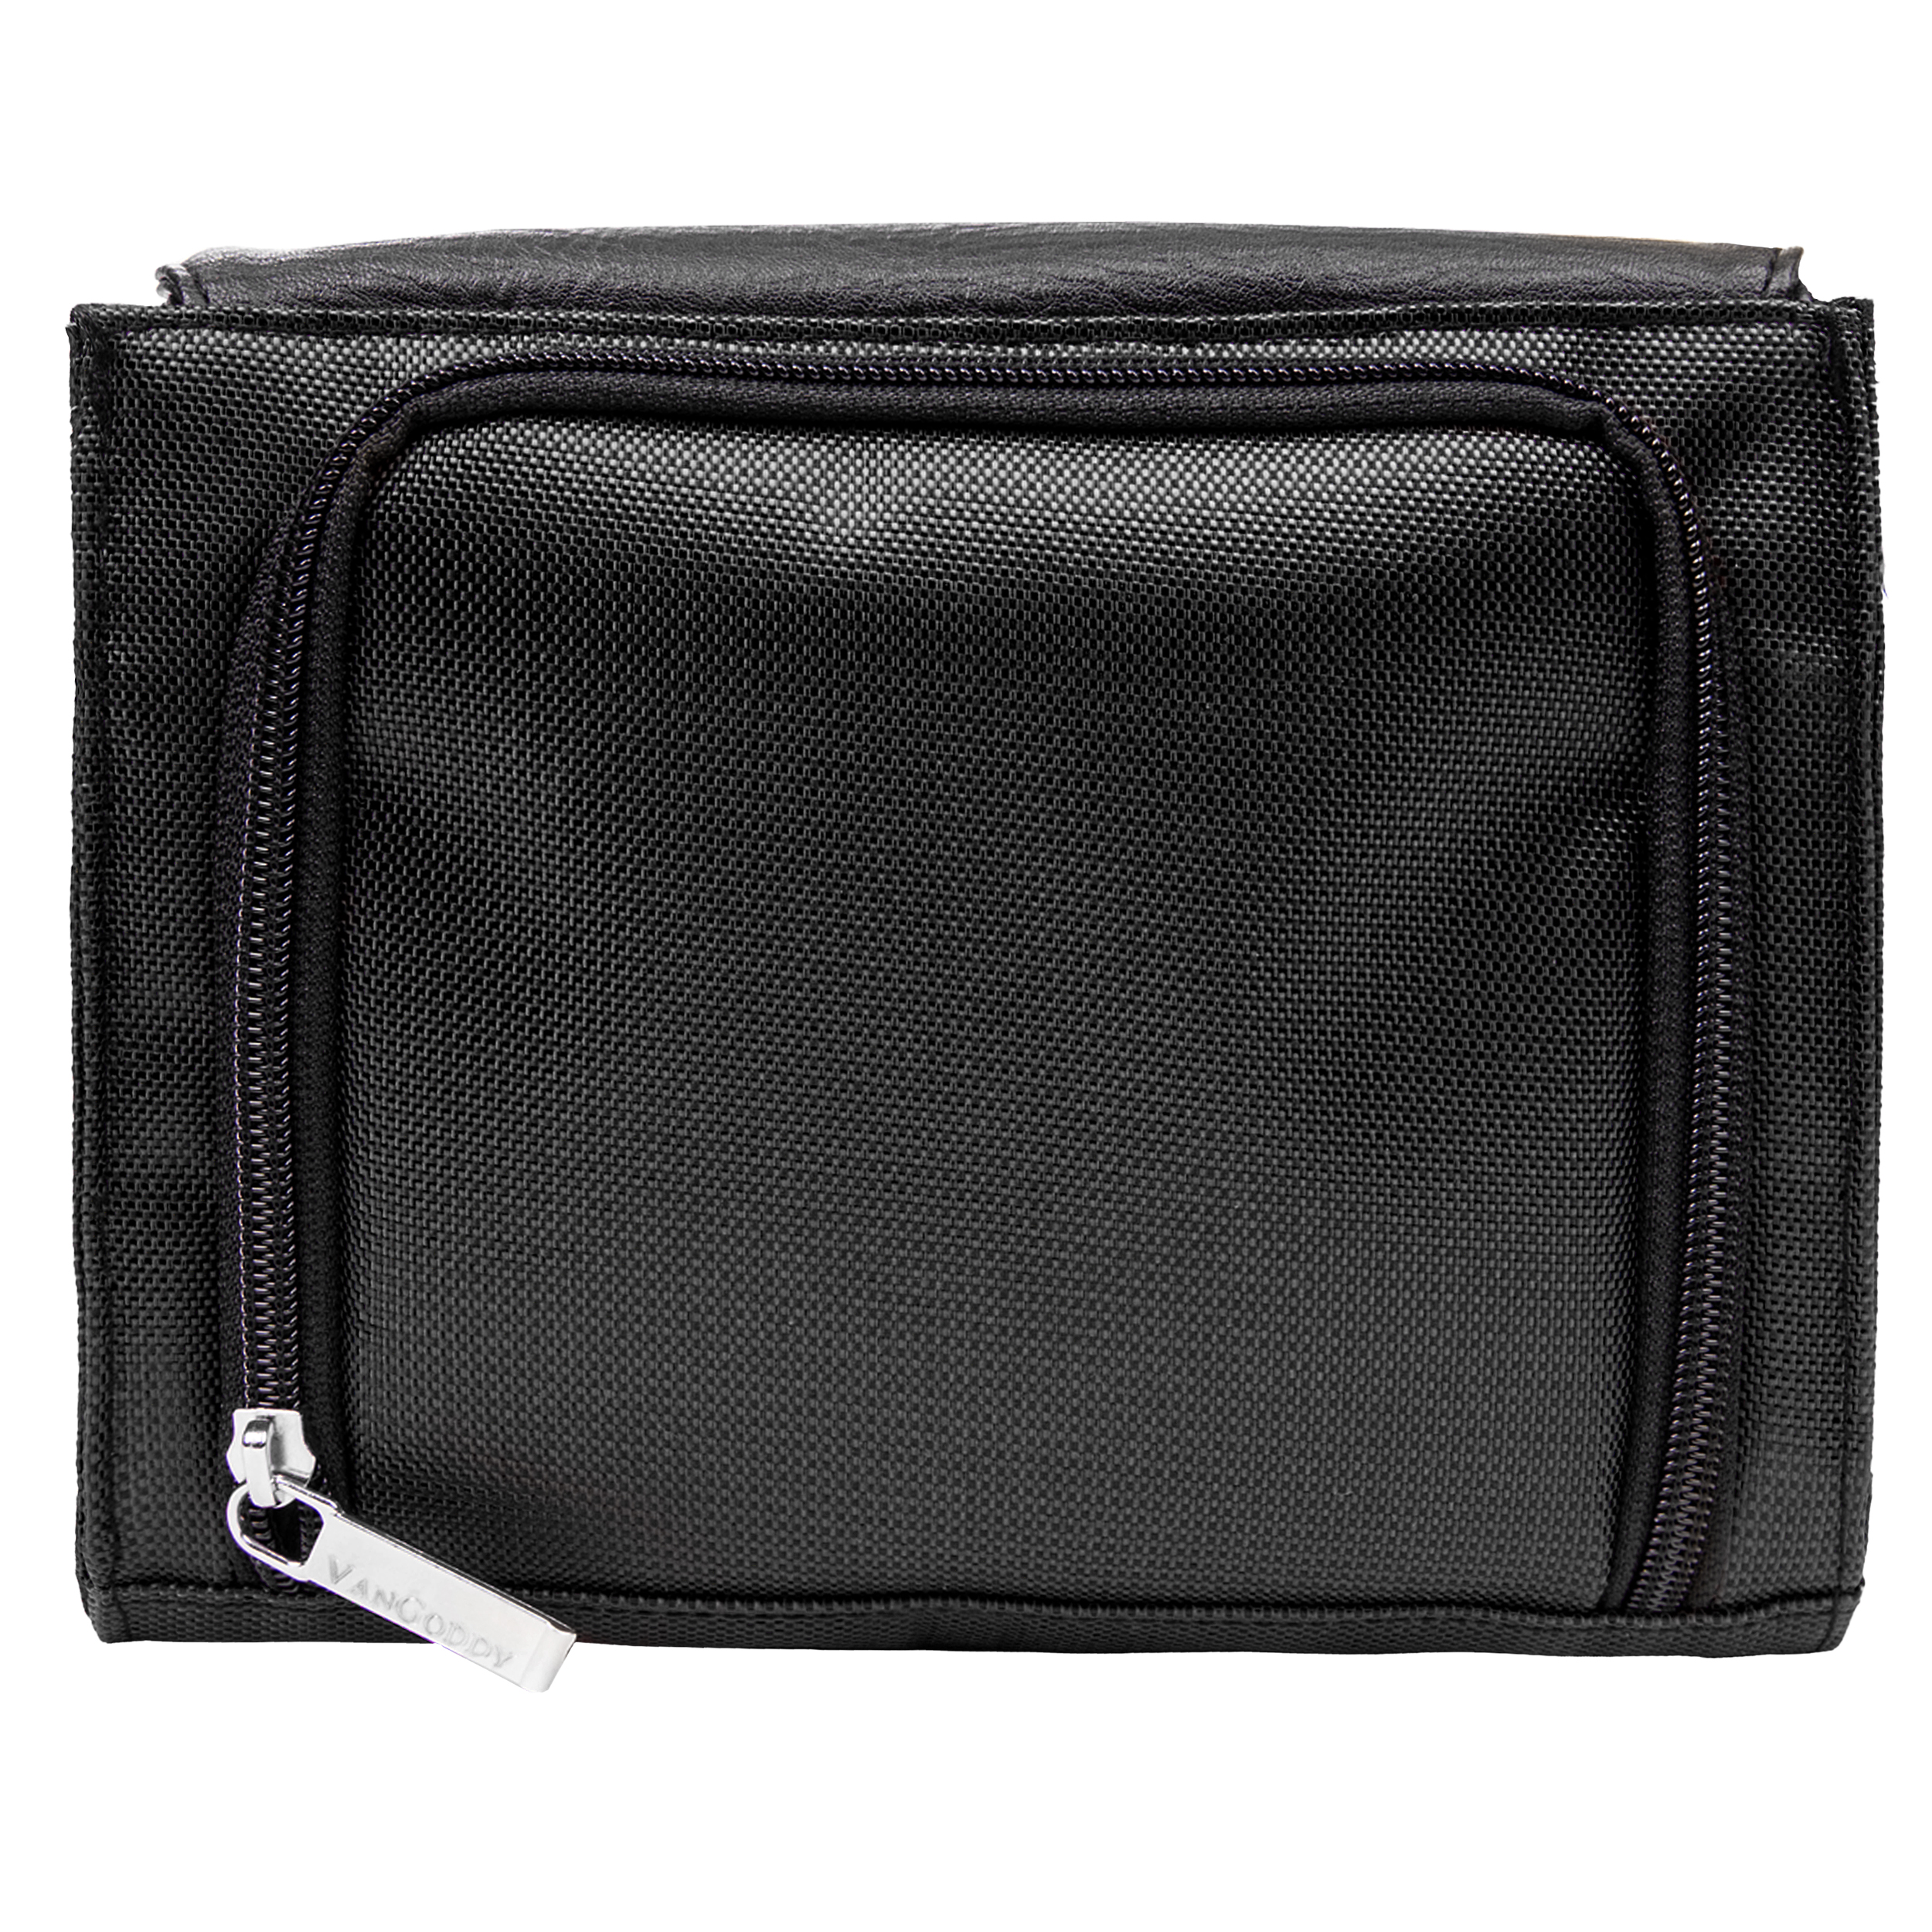 Metric Camera Bag (Black)